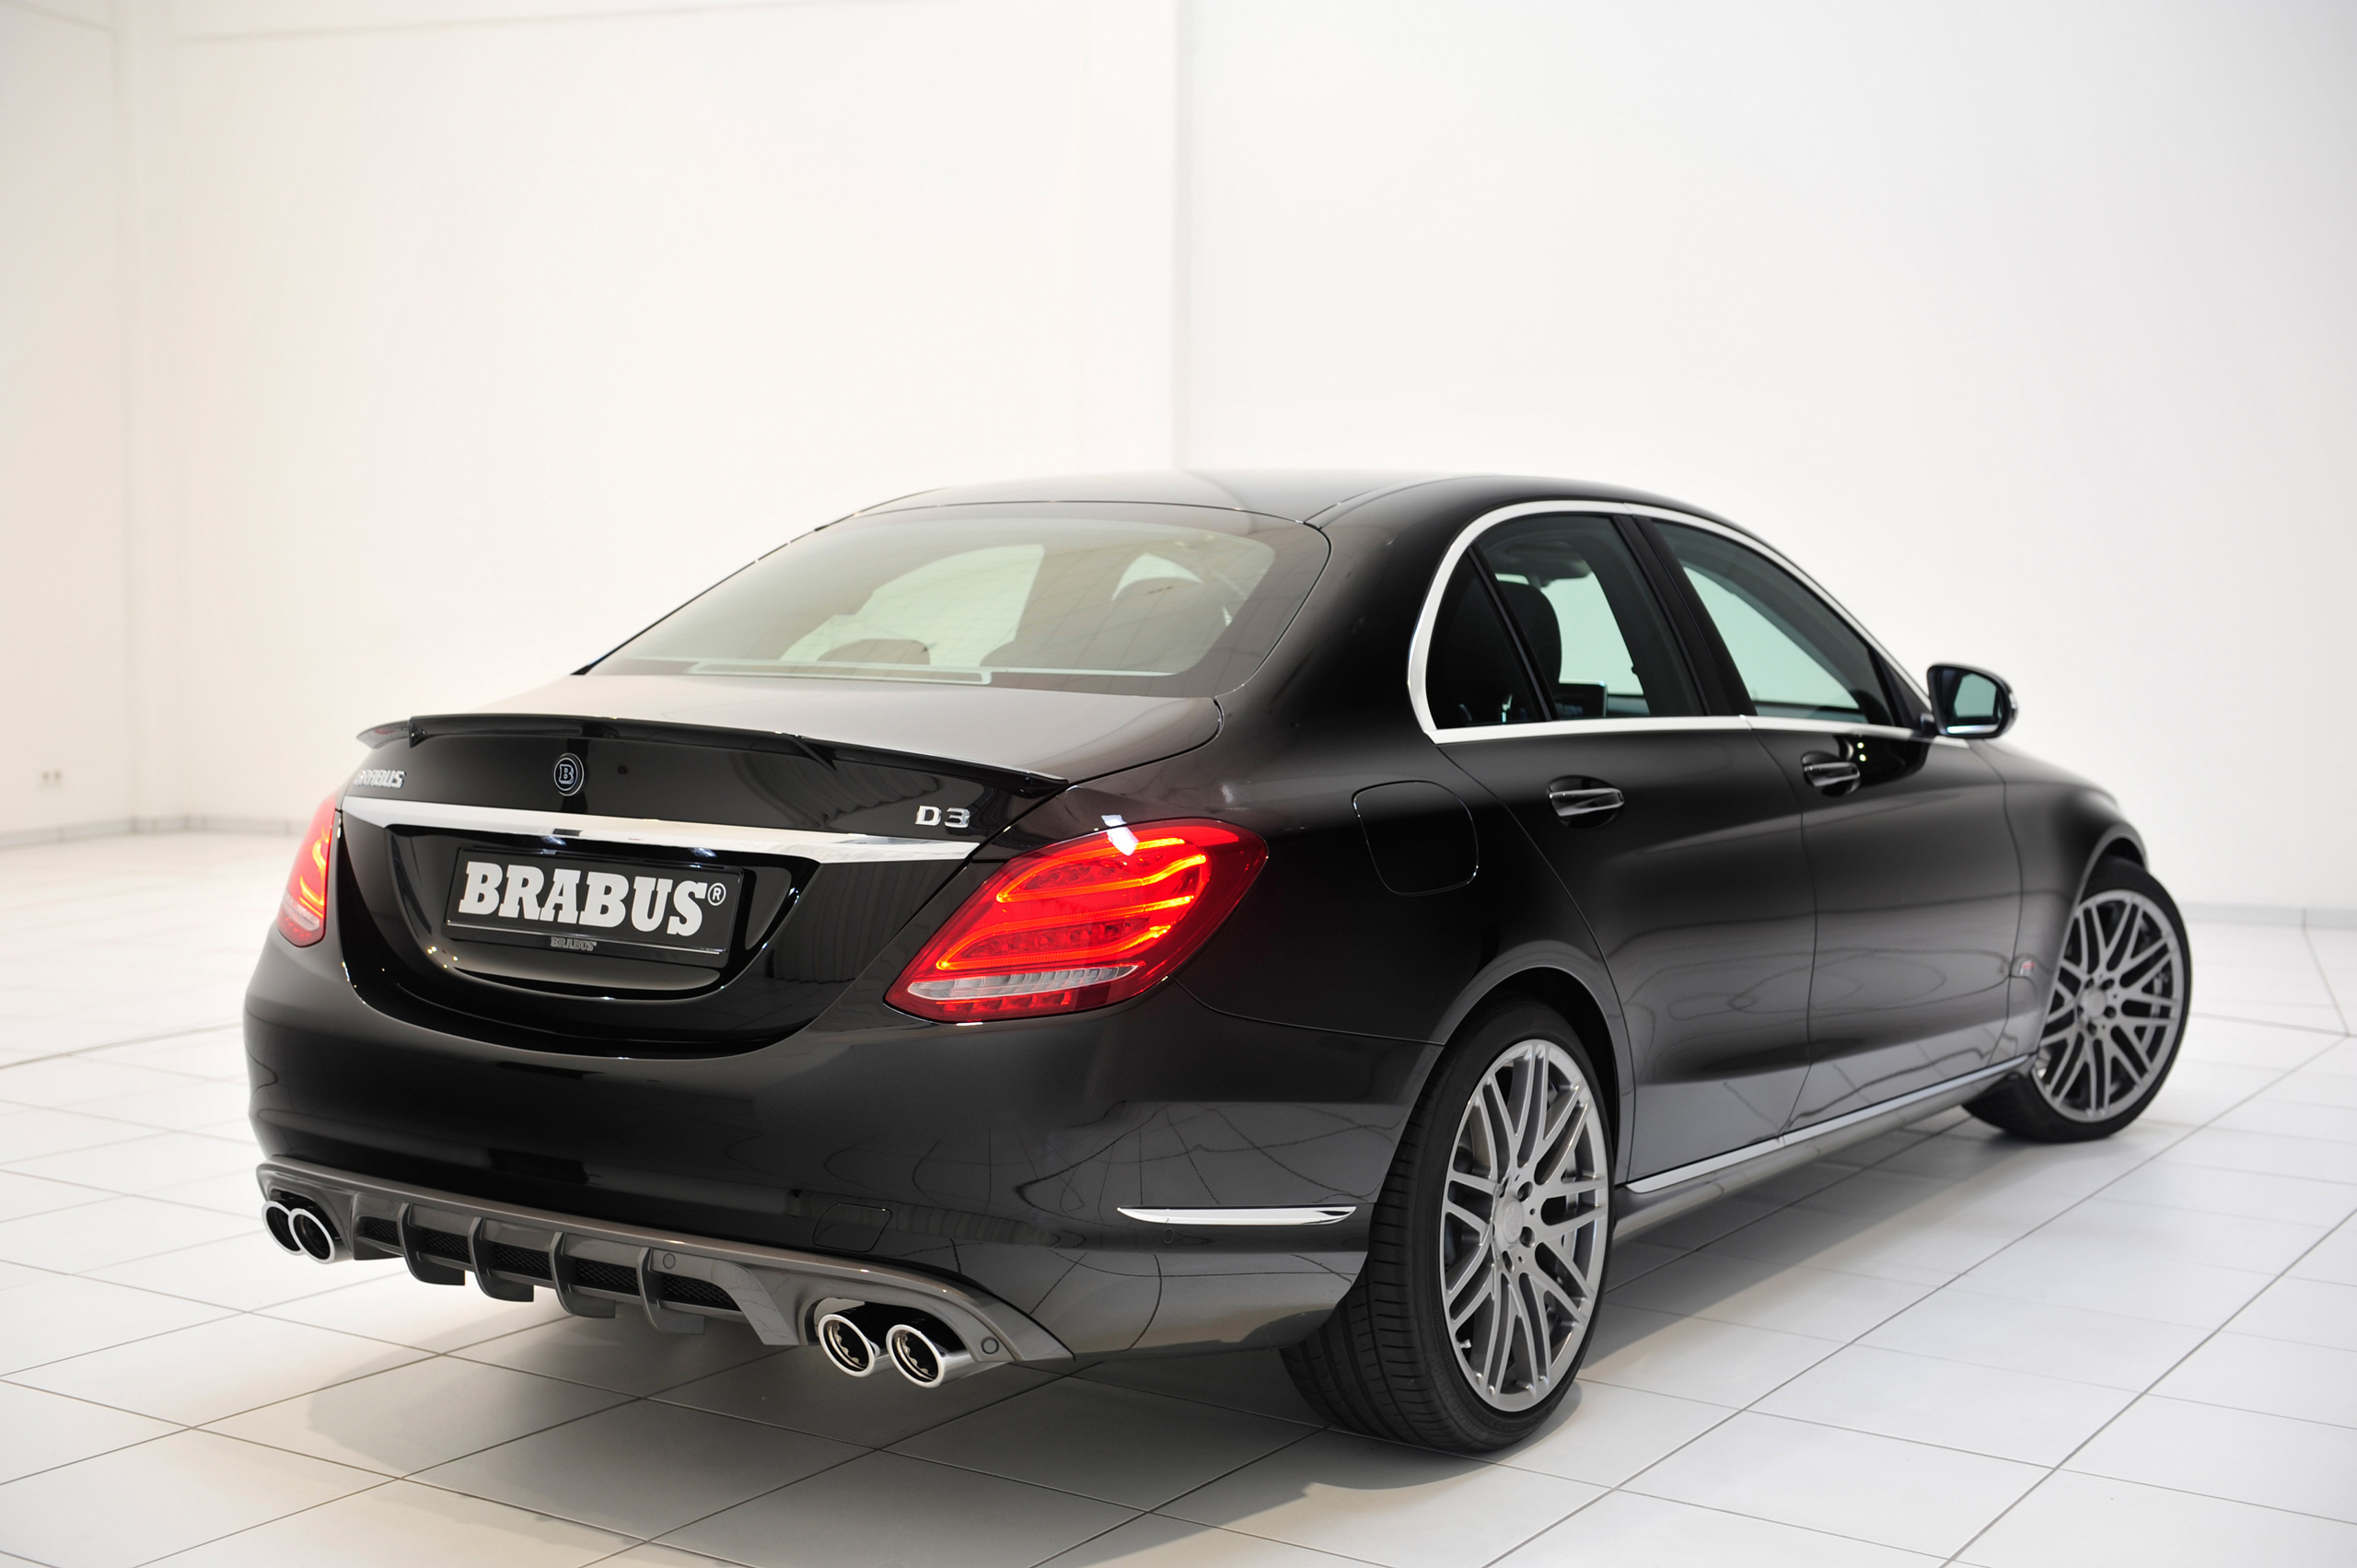 Brabus w205 mercedes benz c class bodykit unveiled image for Mercedes benz w205